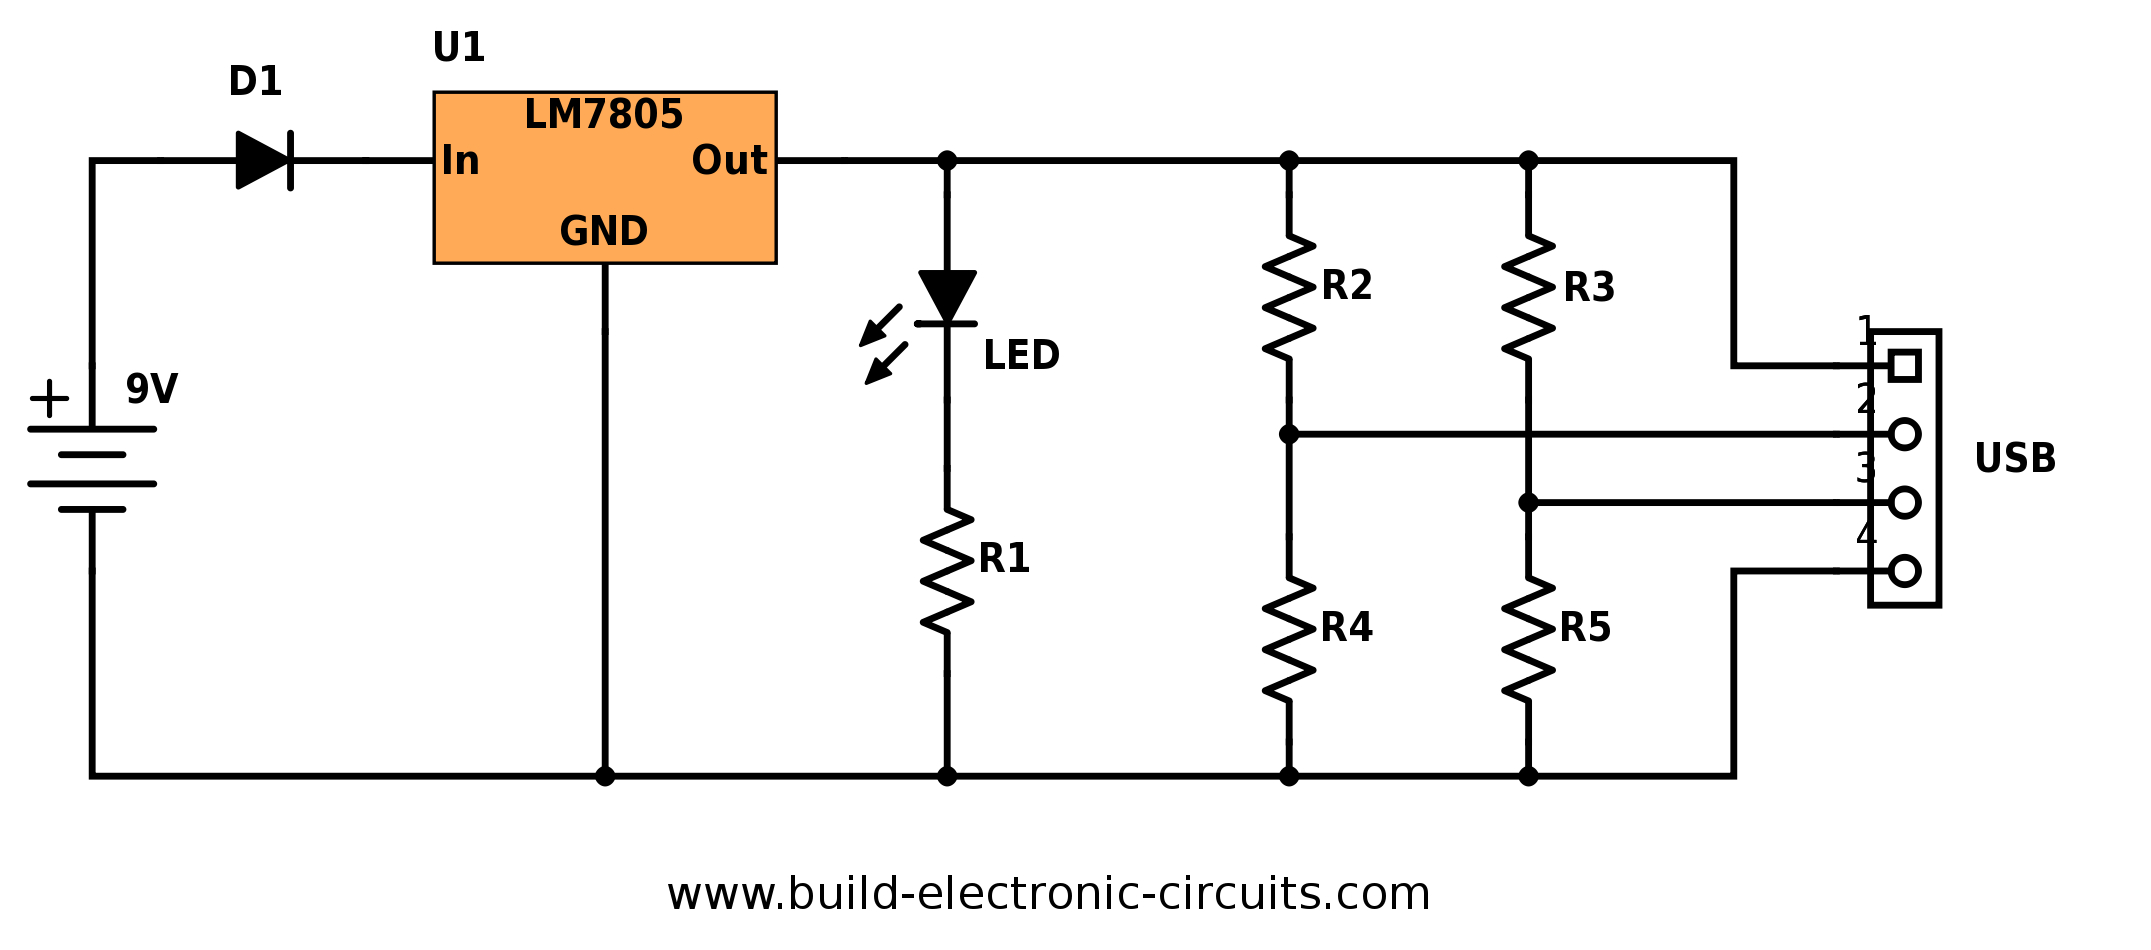 Portable-Usb-Charger-Circuit-Diagram - Build Electronic Circuits - Diagram Of Usb Charger Wiring